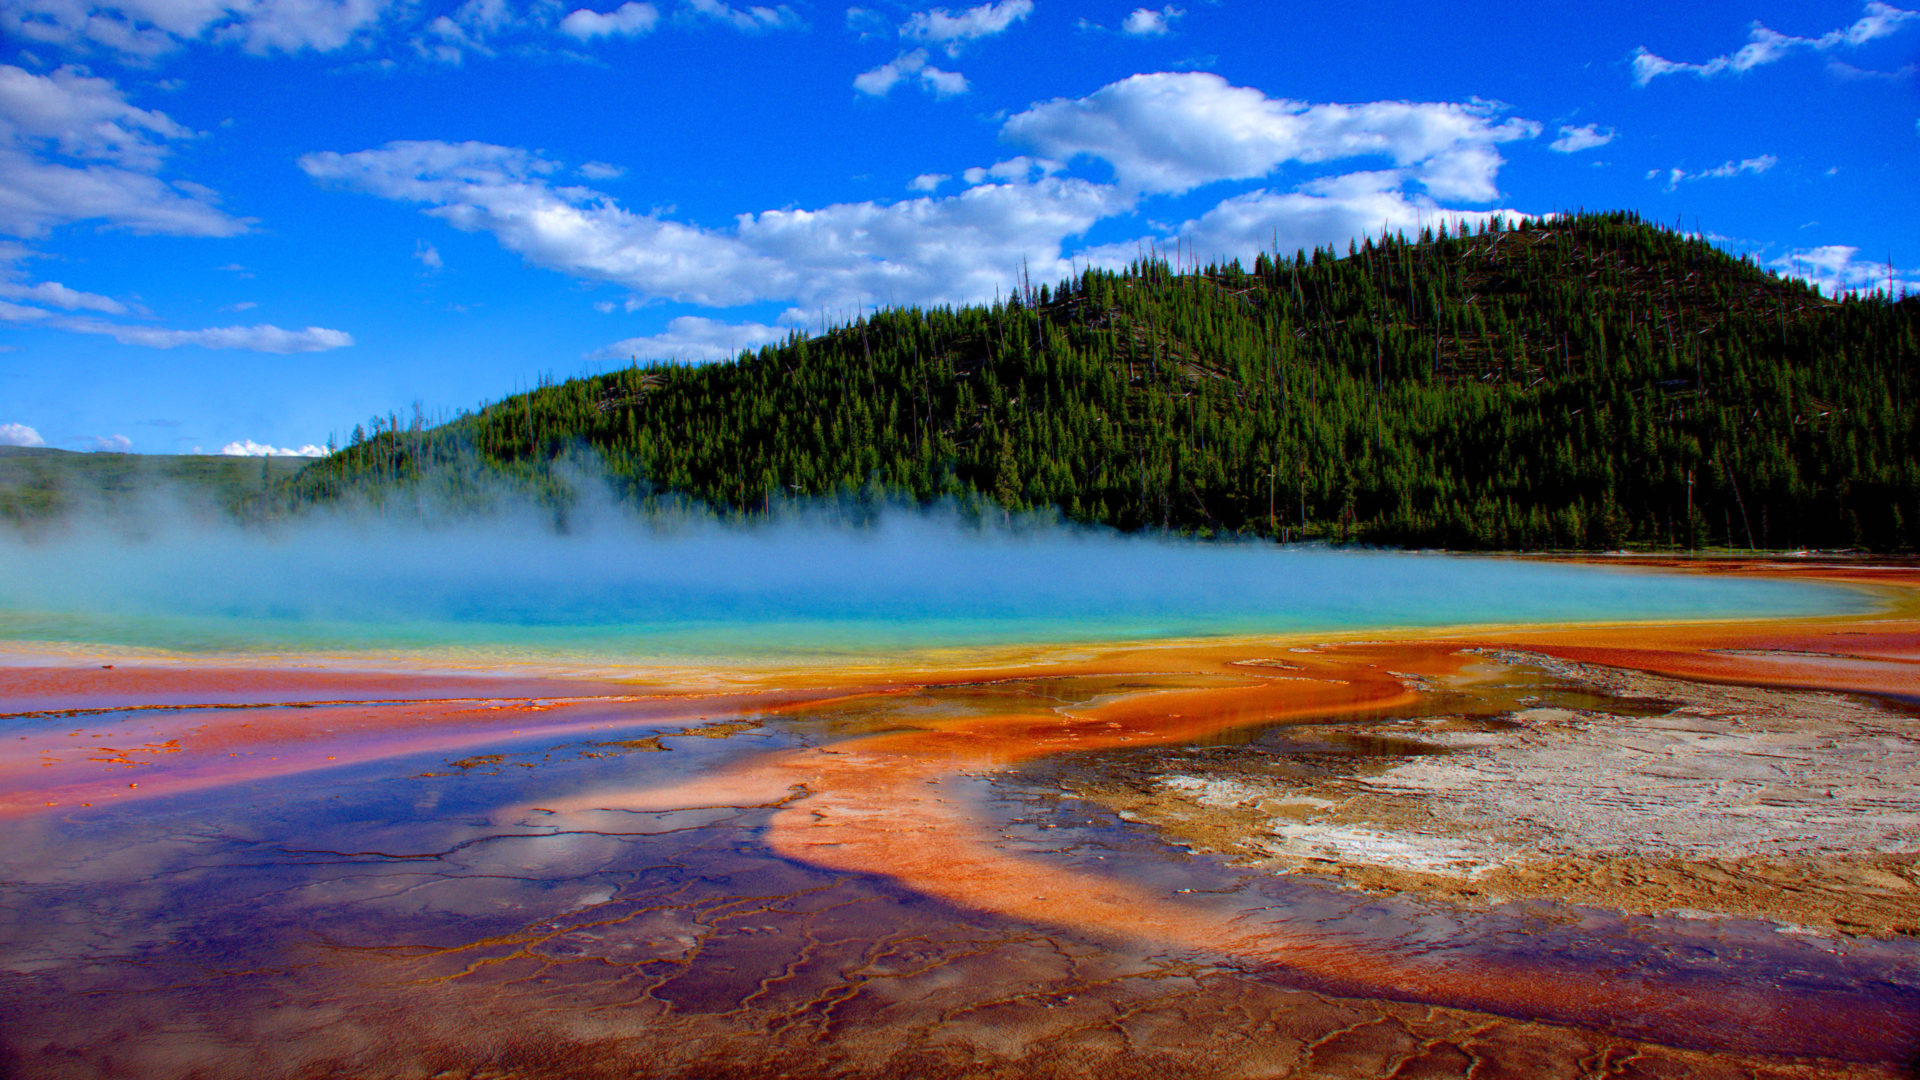 Colorado Fall Wallpaper Grand Prismatic Spring Yellowstone National Park Is The